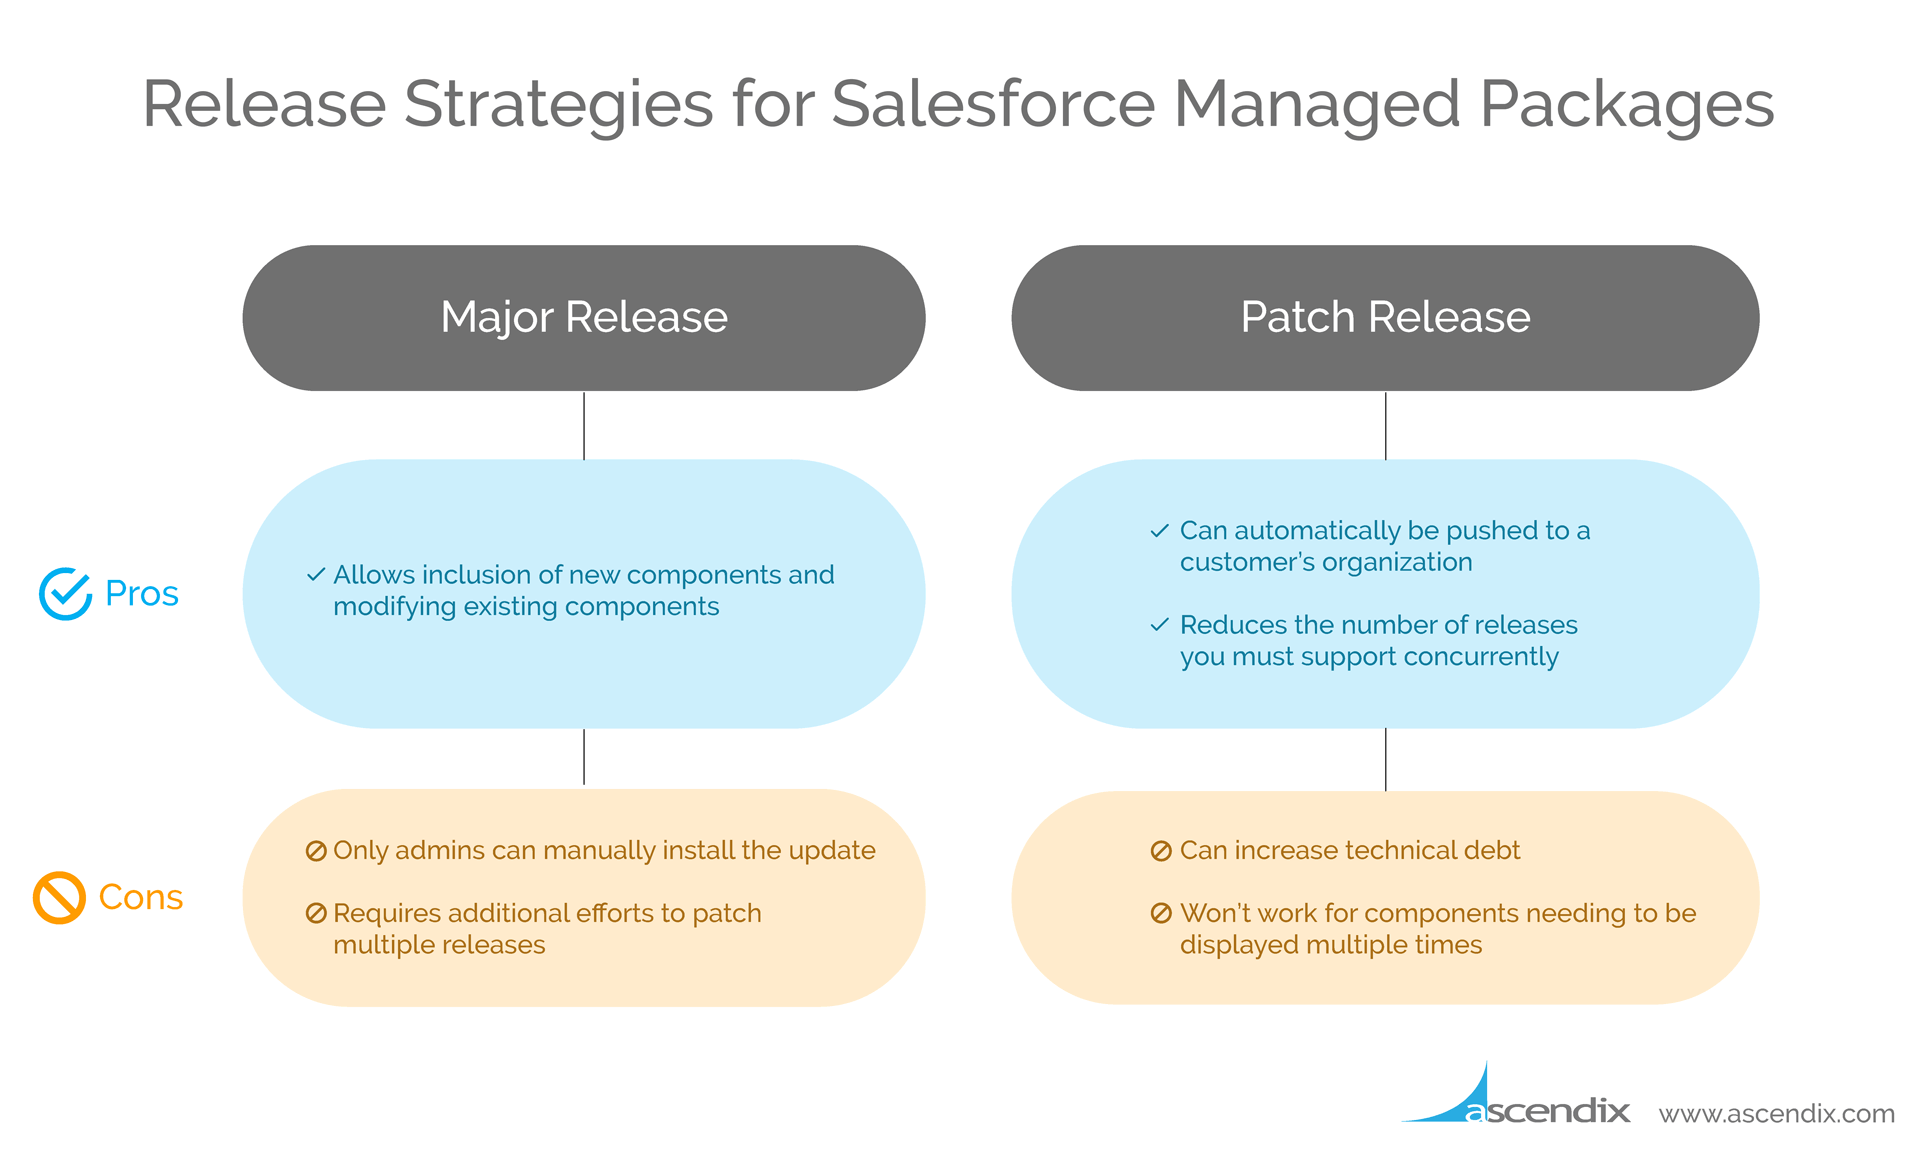 Ascendix-Technologies-Salesforce-managed-package-release-strategies